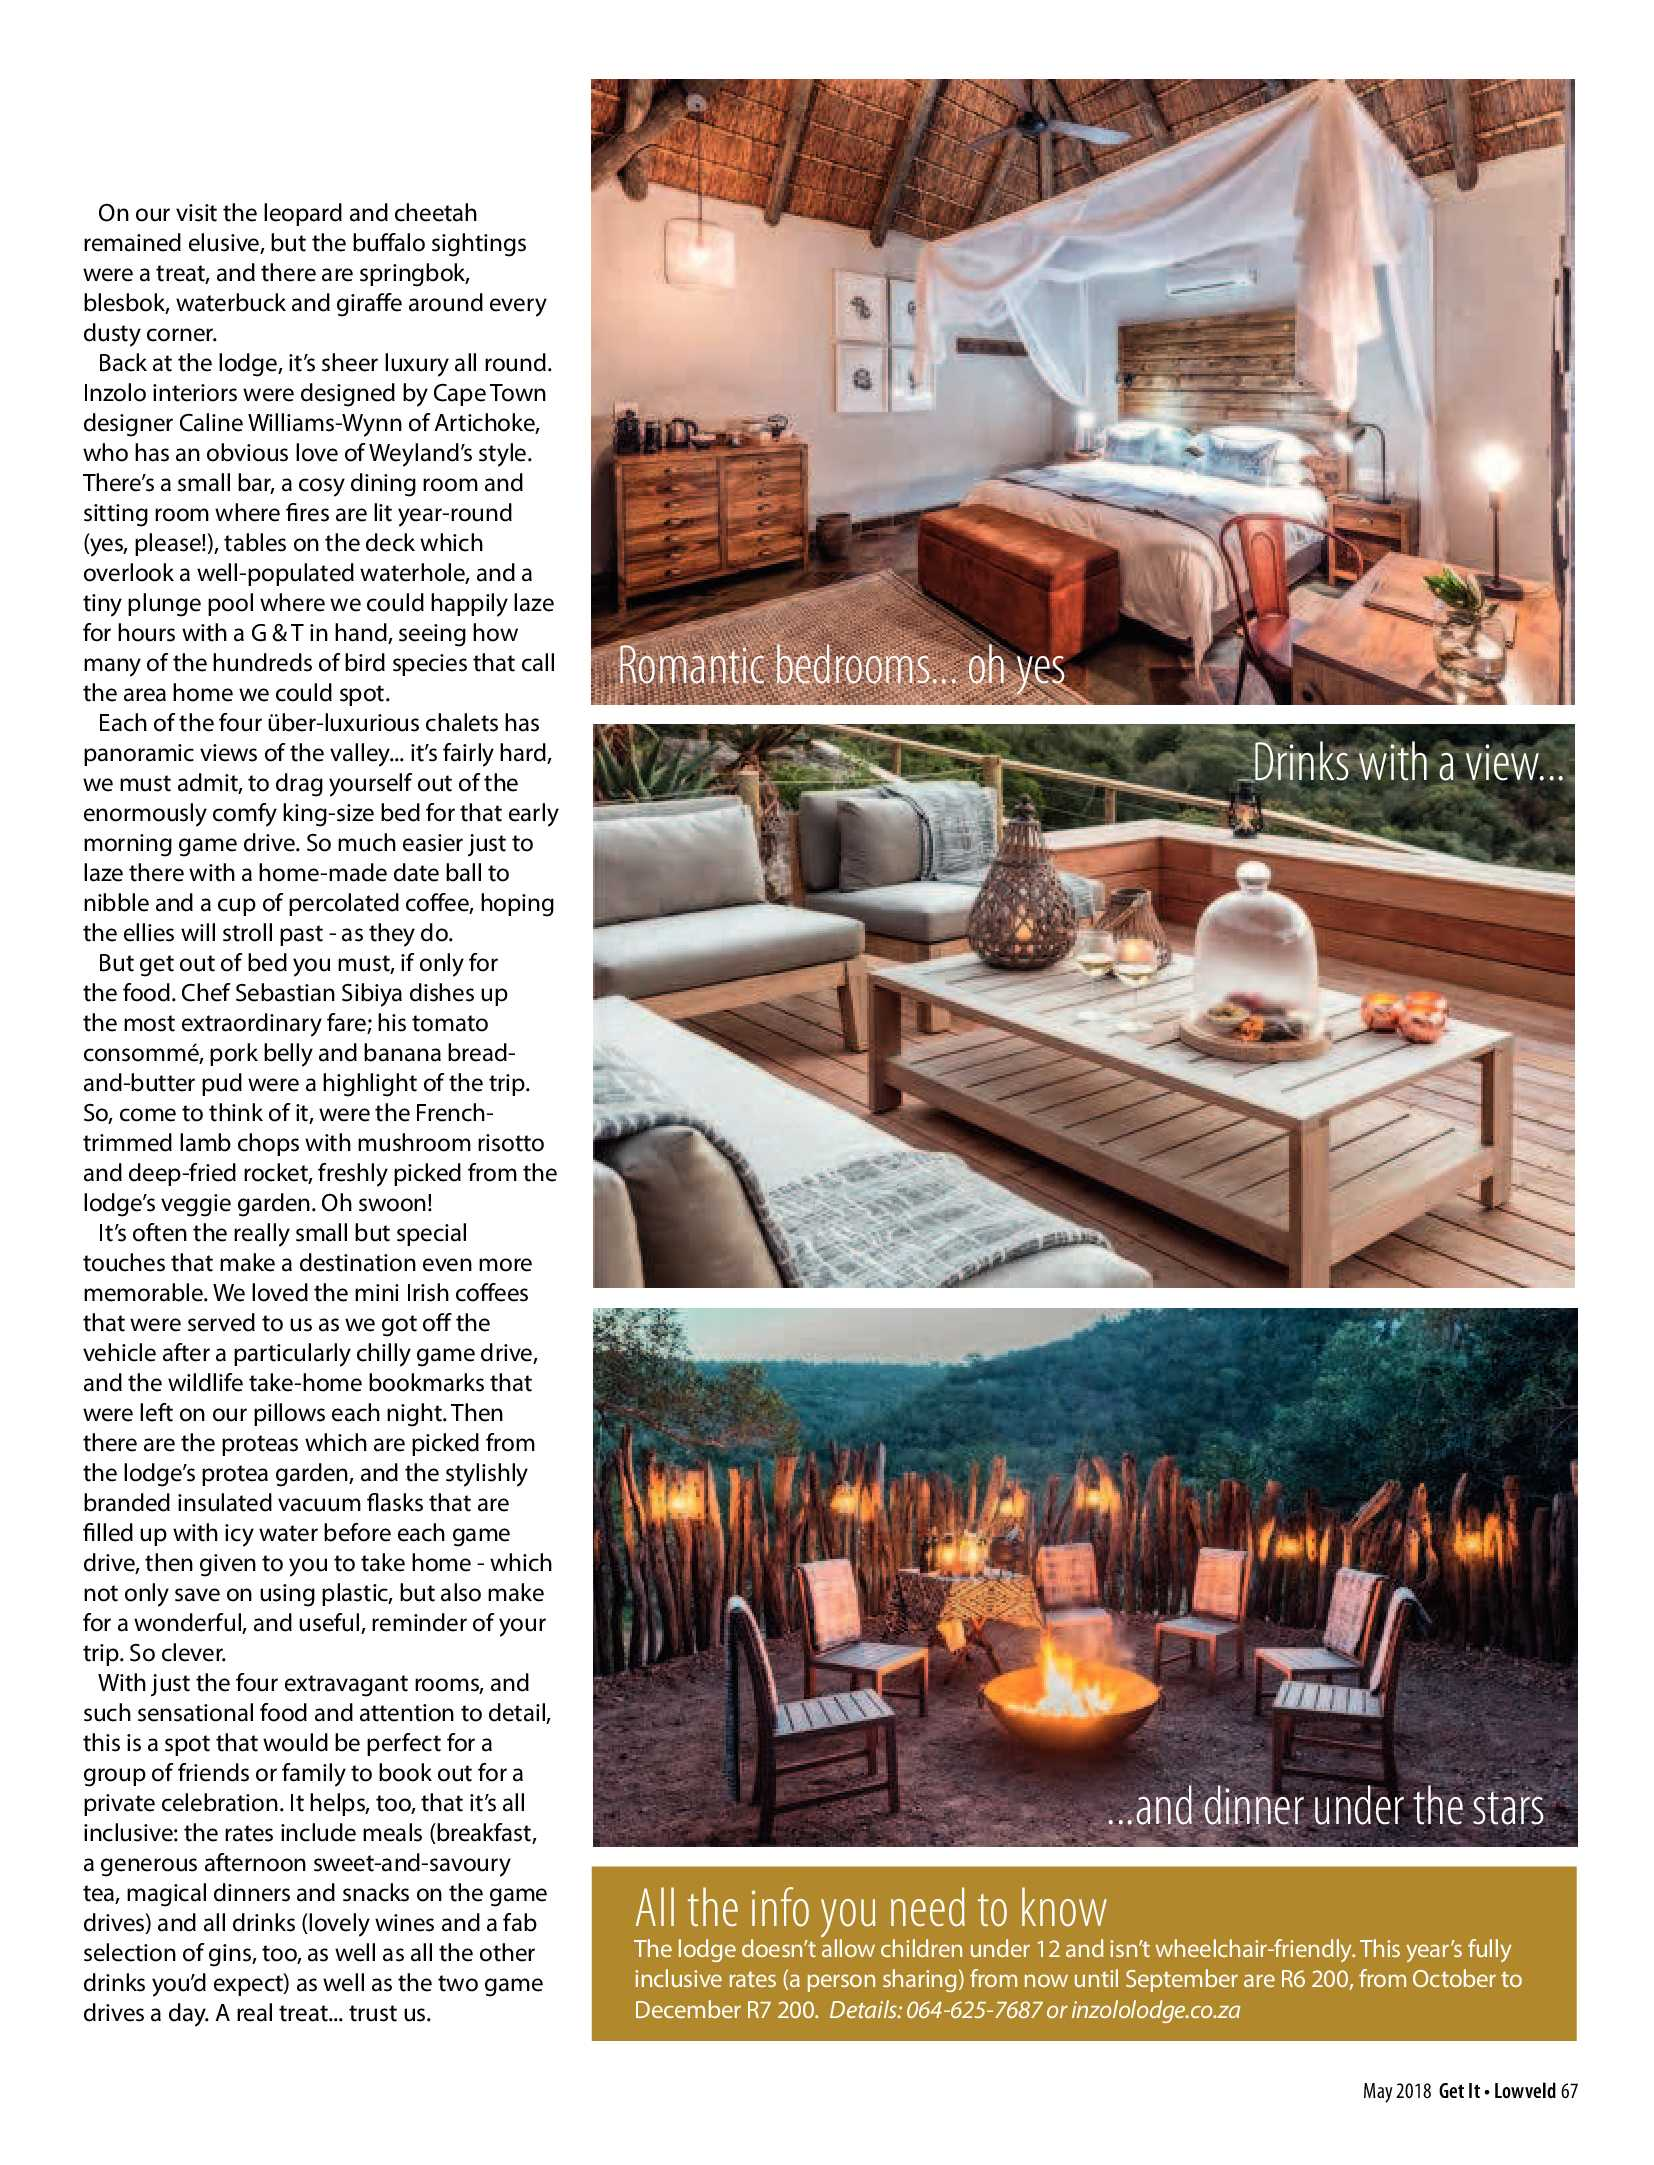 get-lowveld-magazine-may-2018-epapers-page-69